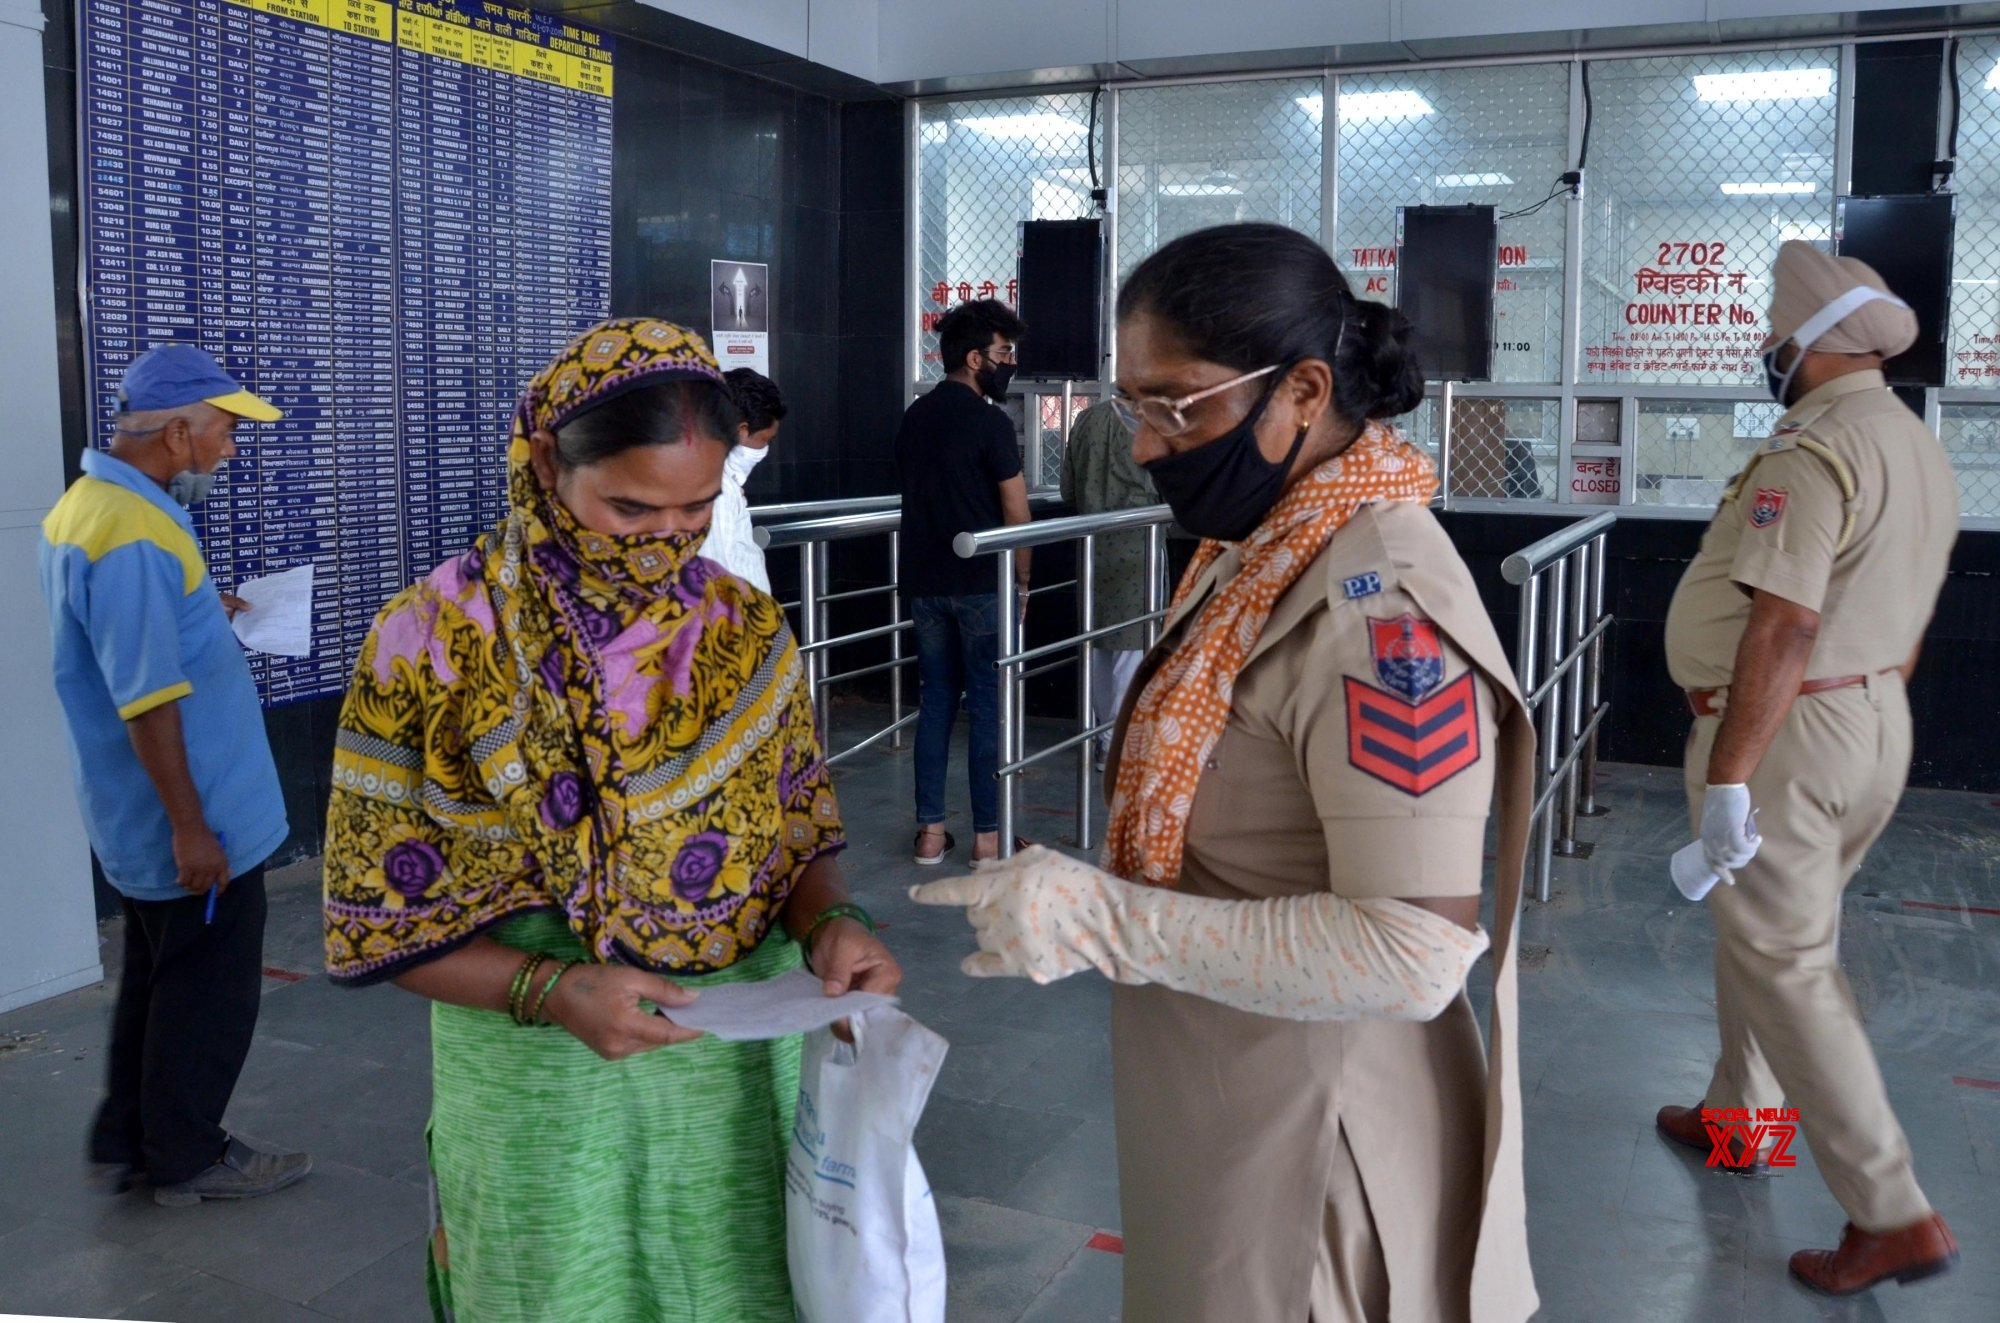 Amritsar: People visit Amritsar railway station for reservations to return home #Gallery